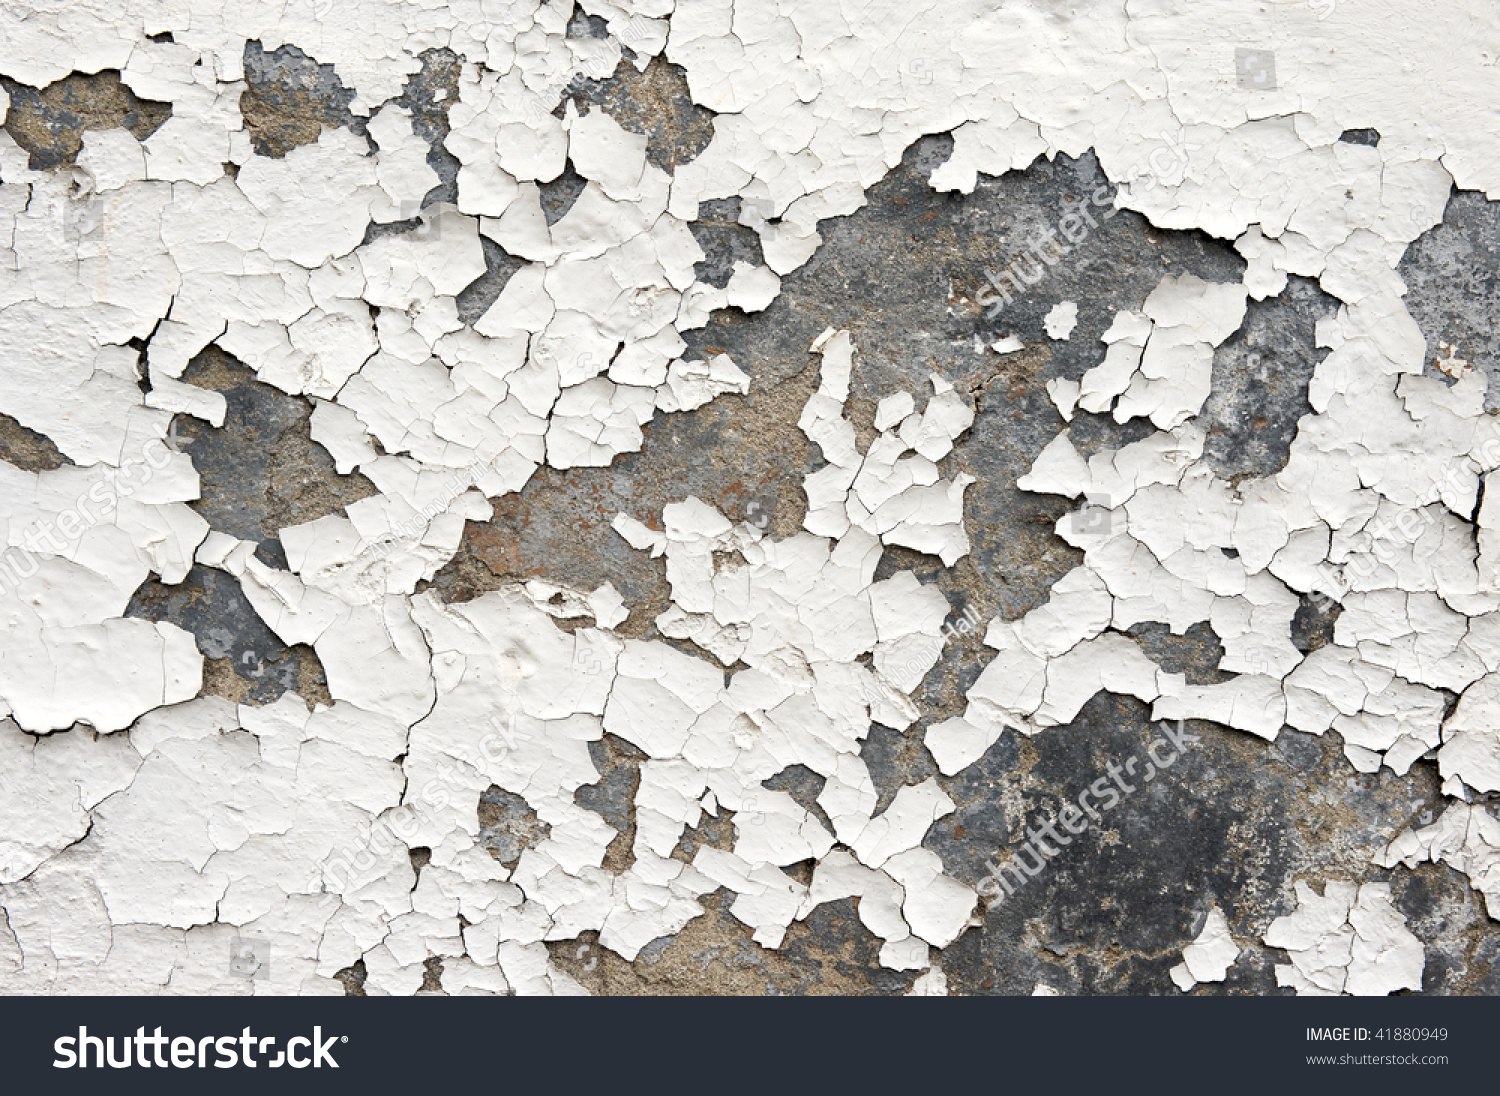 White Paint On An Exterior Wall Cracked And Flaking To Reveal Old Concrete Beneath Stock Photo